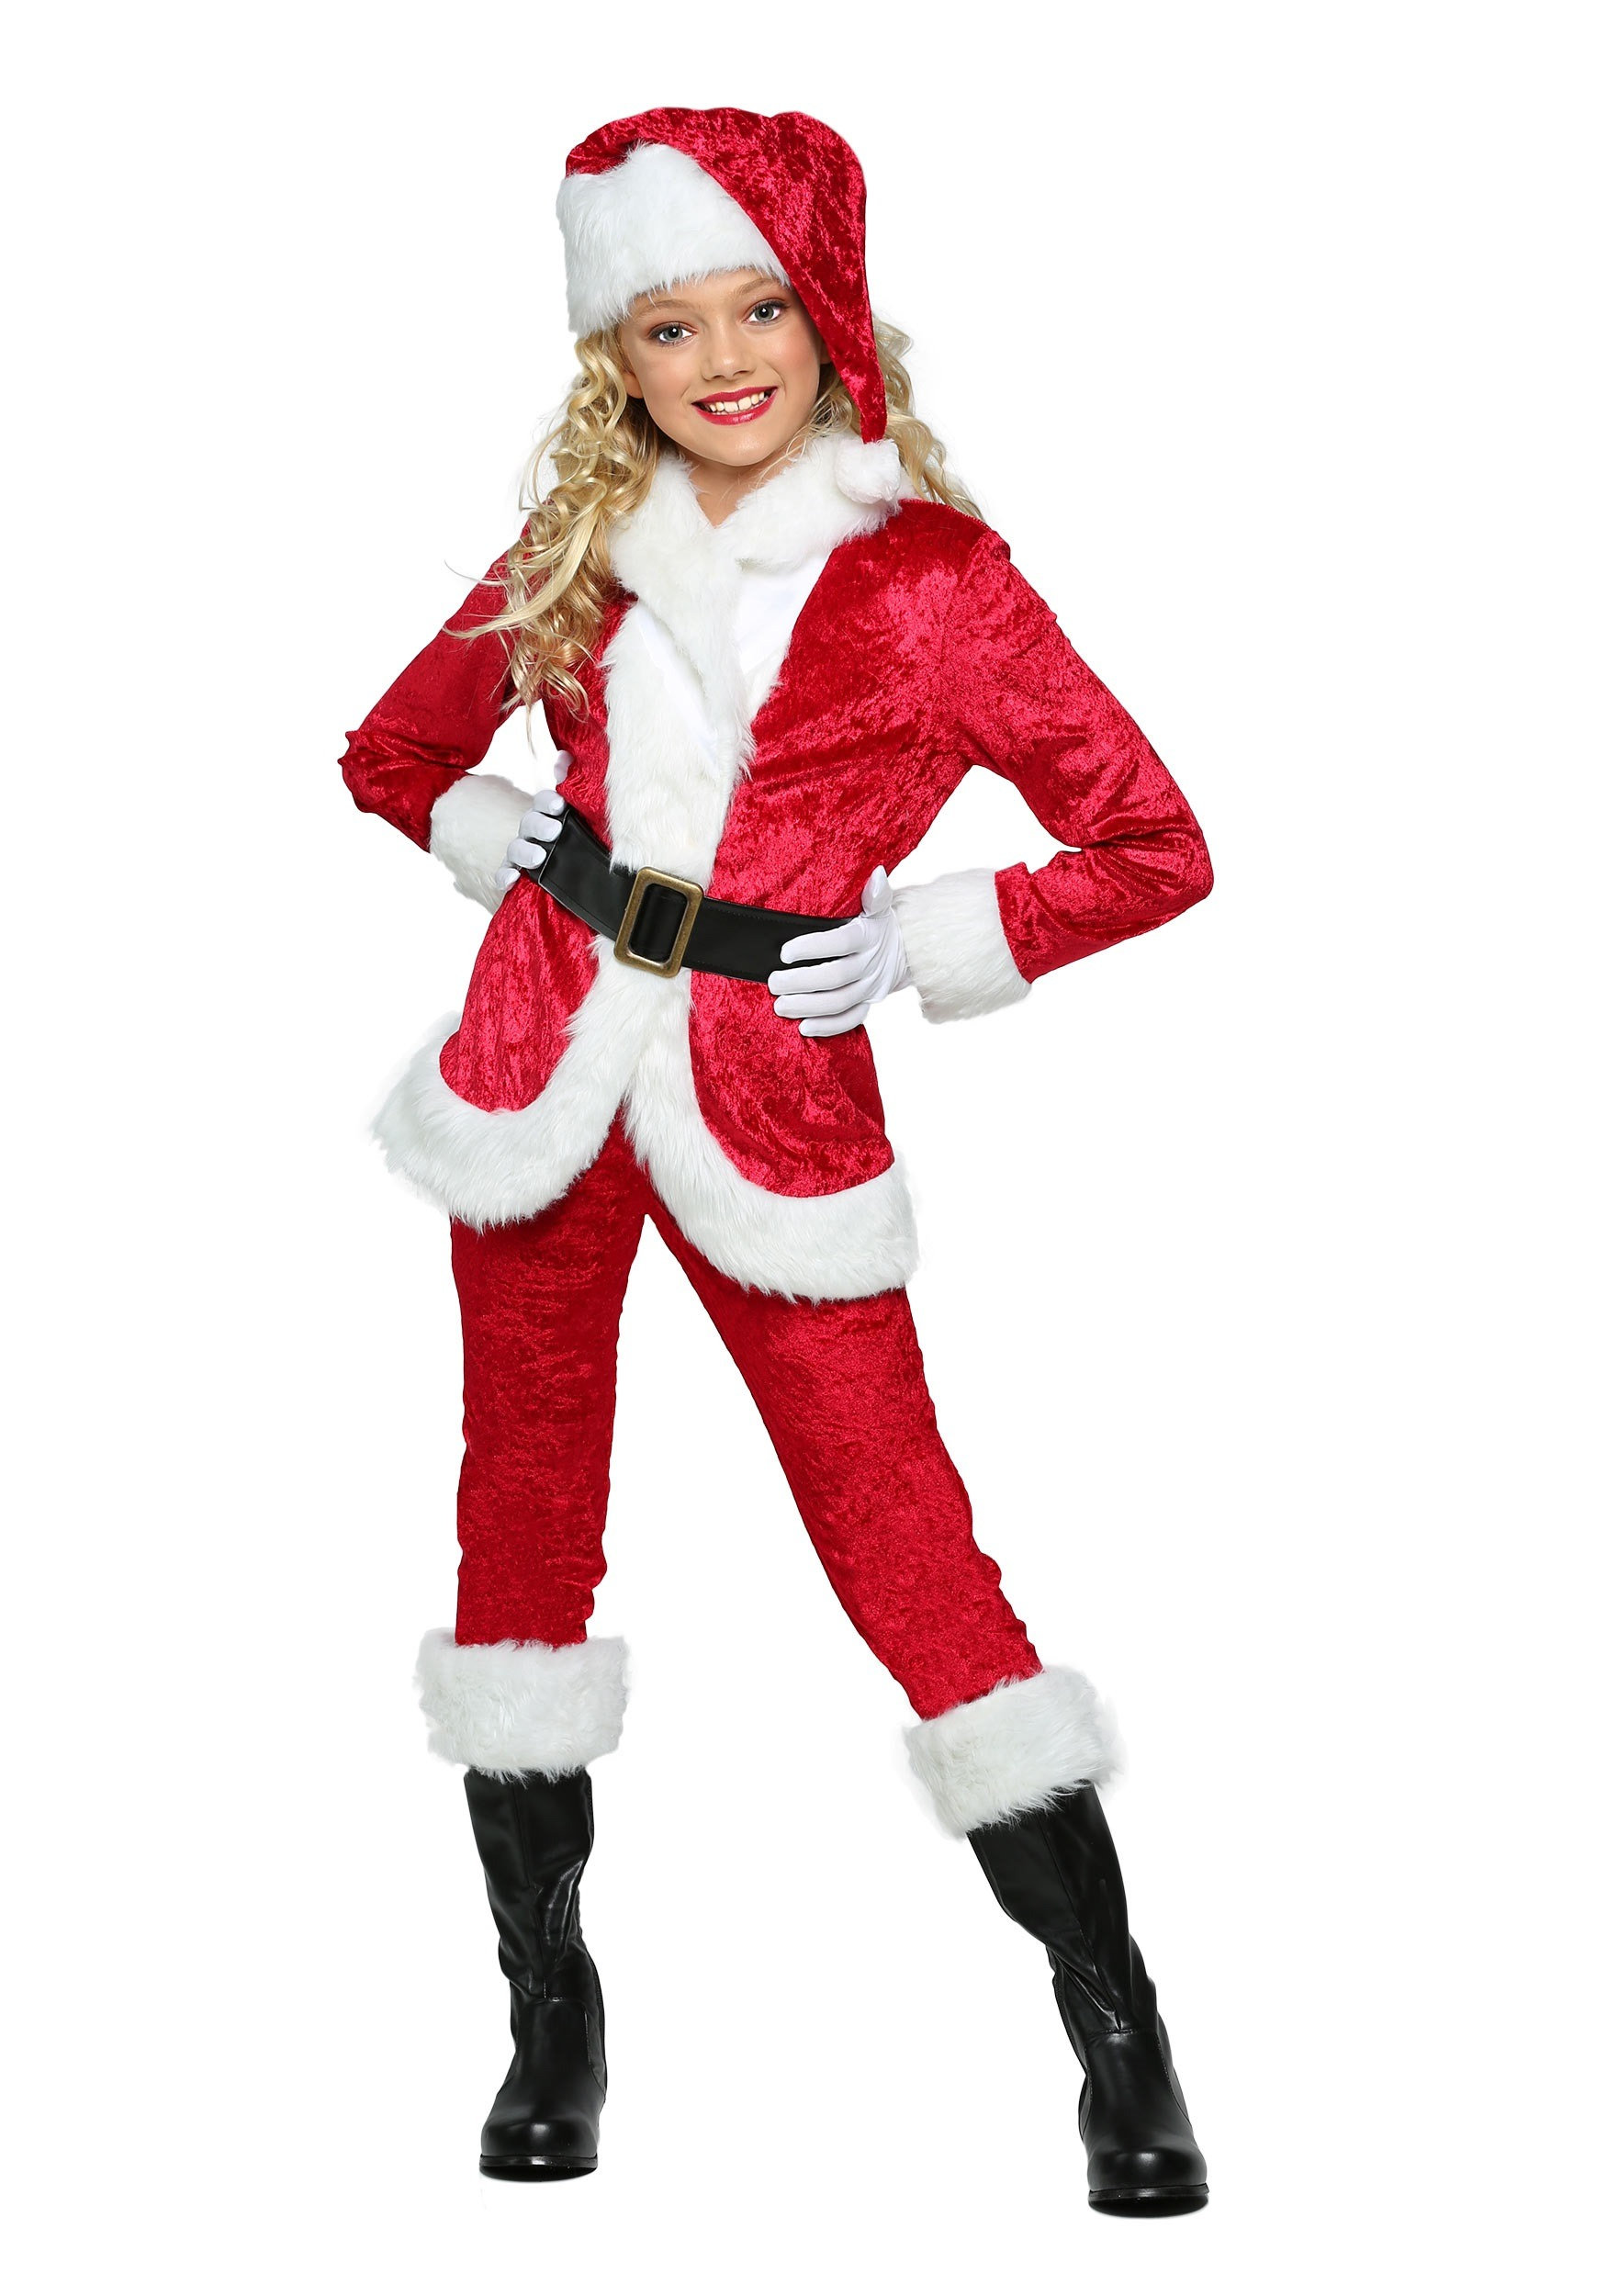 Santa and Mrs. Claus Costumes for Girls -- Santa Claus would be lost without Mrs. Claus by his side, and our girls Mrs. Santa Claus costumes are the perfect counterpart to boys Santa costumes! Frilly and festive, these girls costumes bring fun and magic to your family's Christmas festivities.